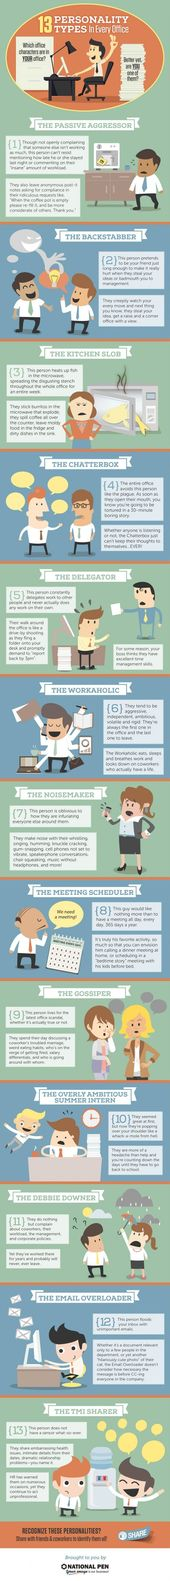 13 Personality Types in Every Office Infographic (Could apply in the classroom, …